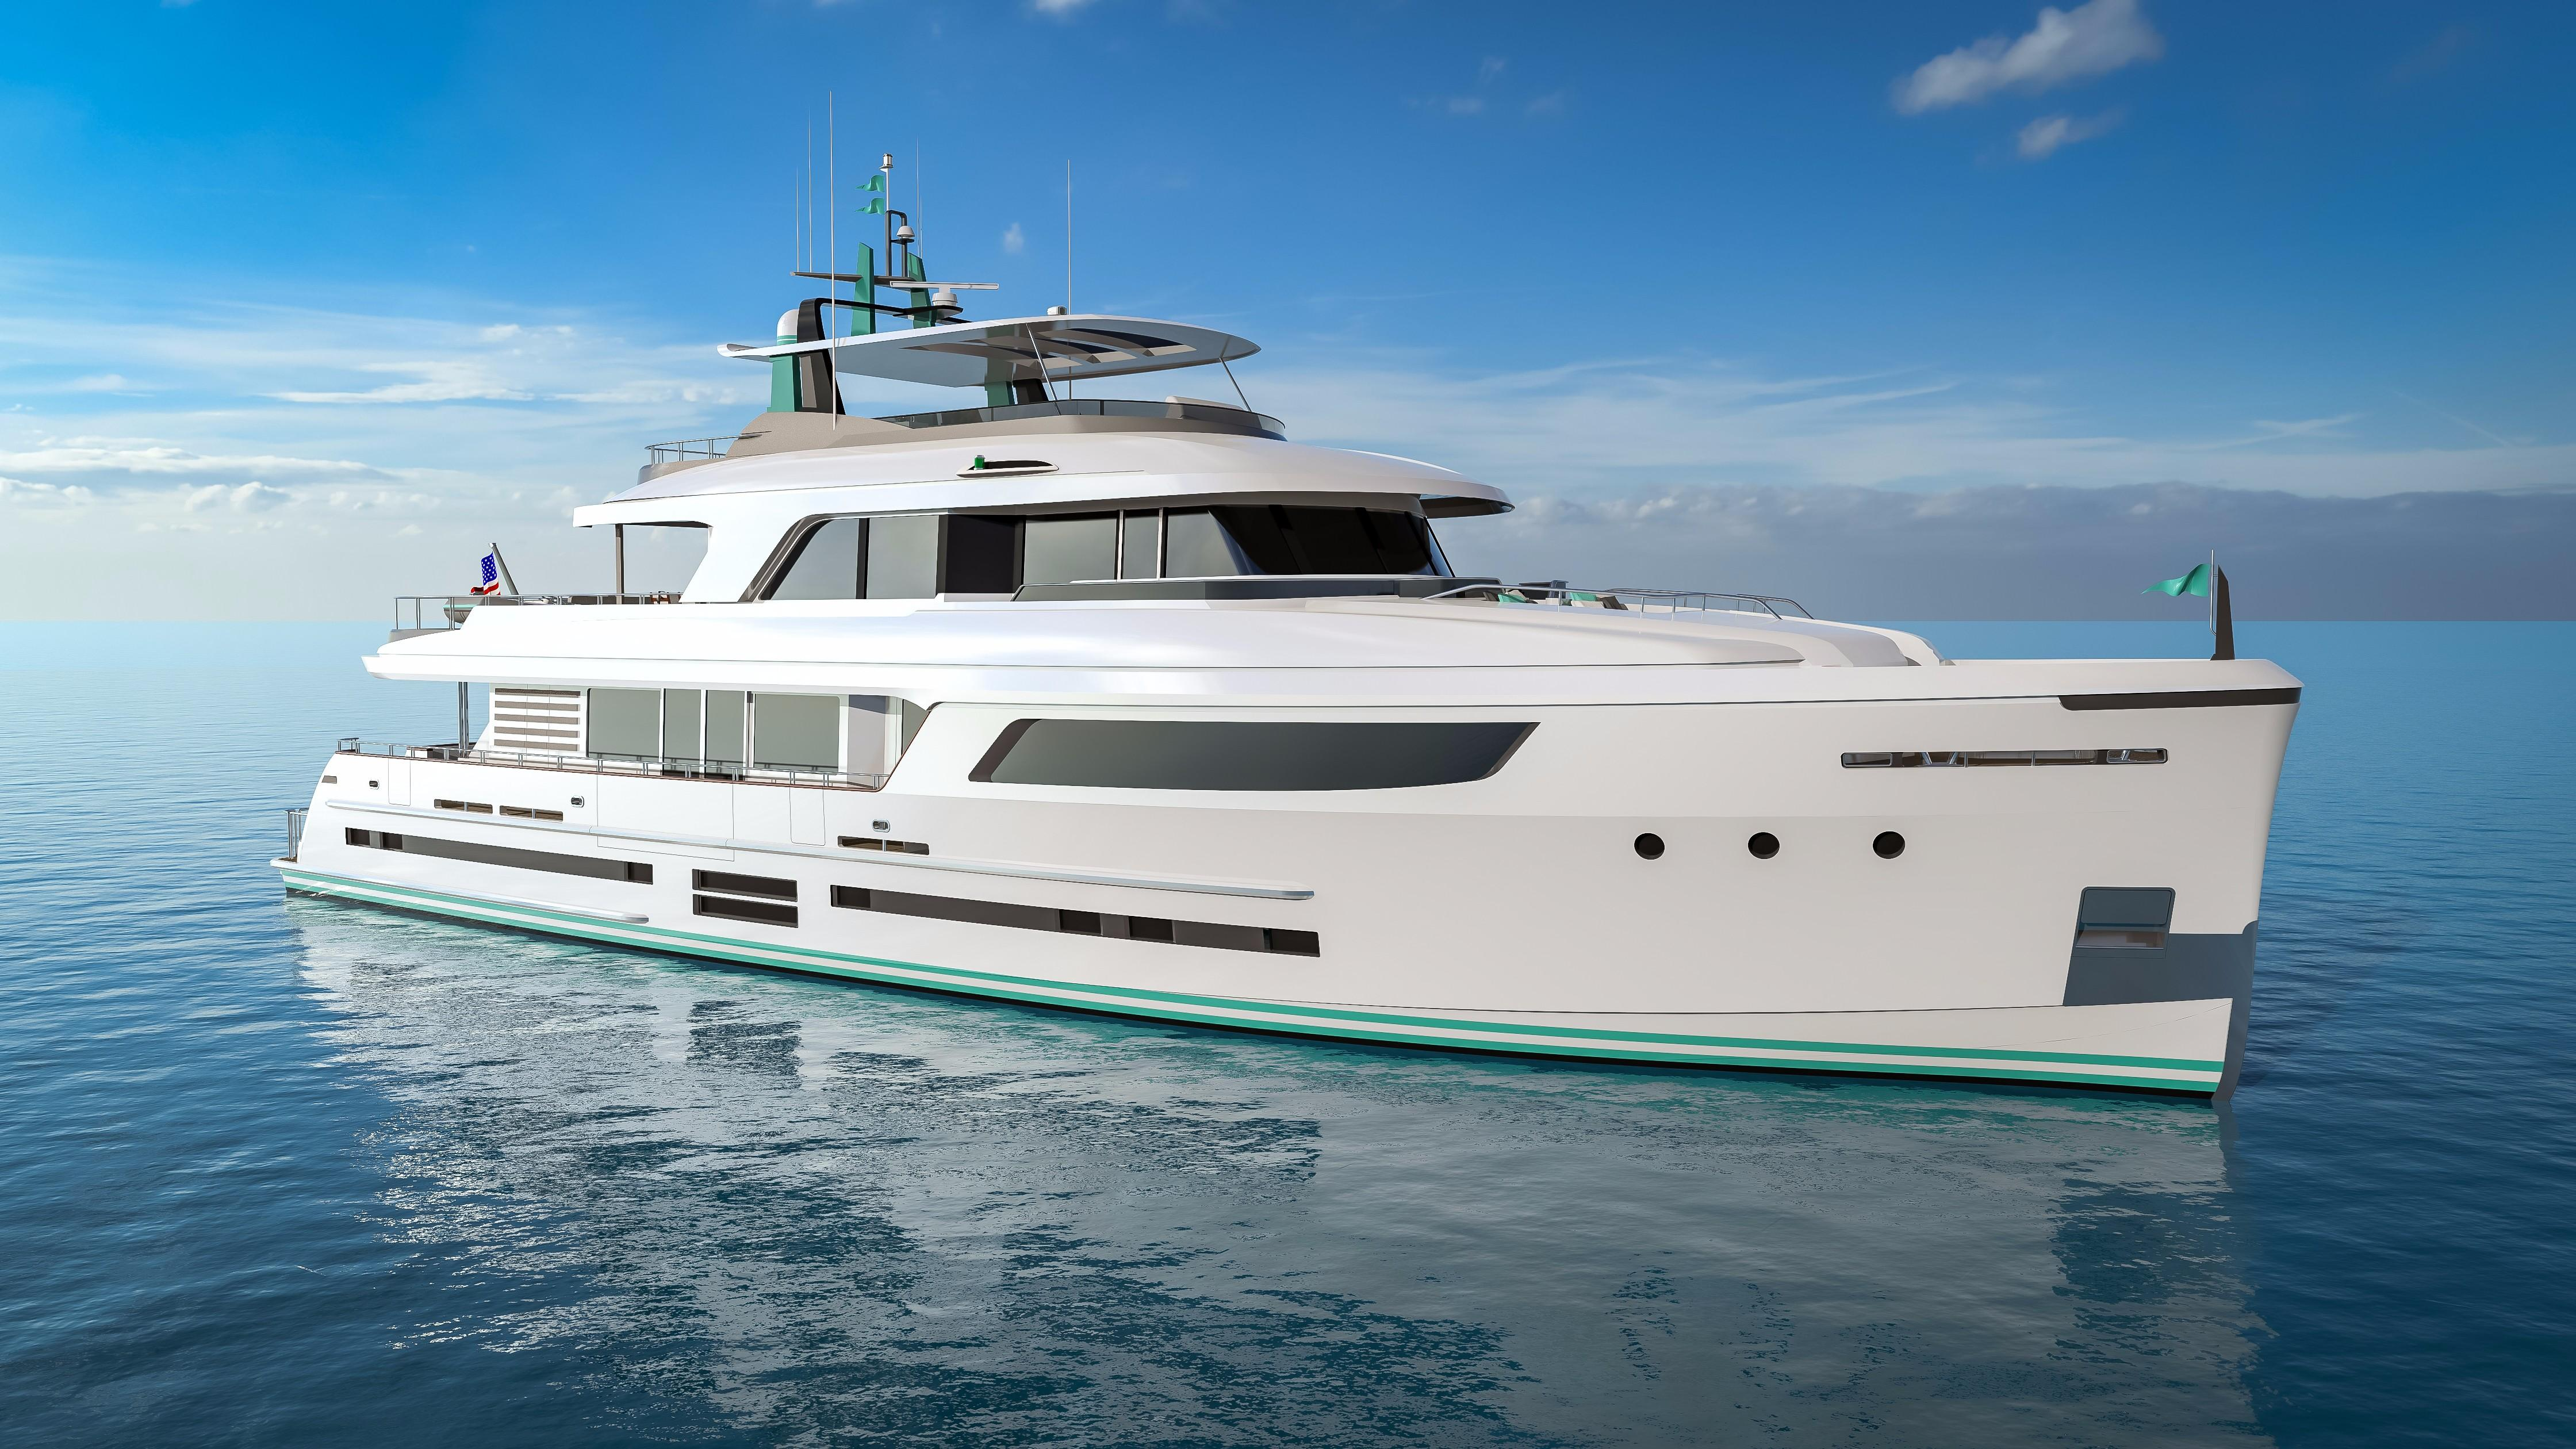 Outer Reef Trident Boat image